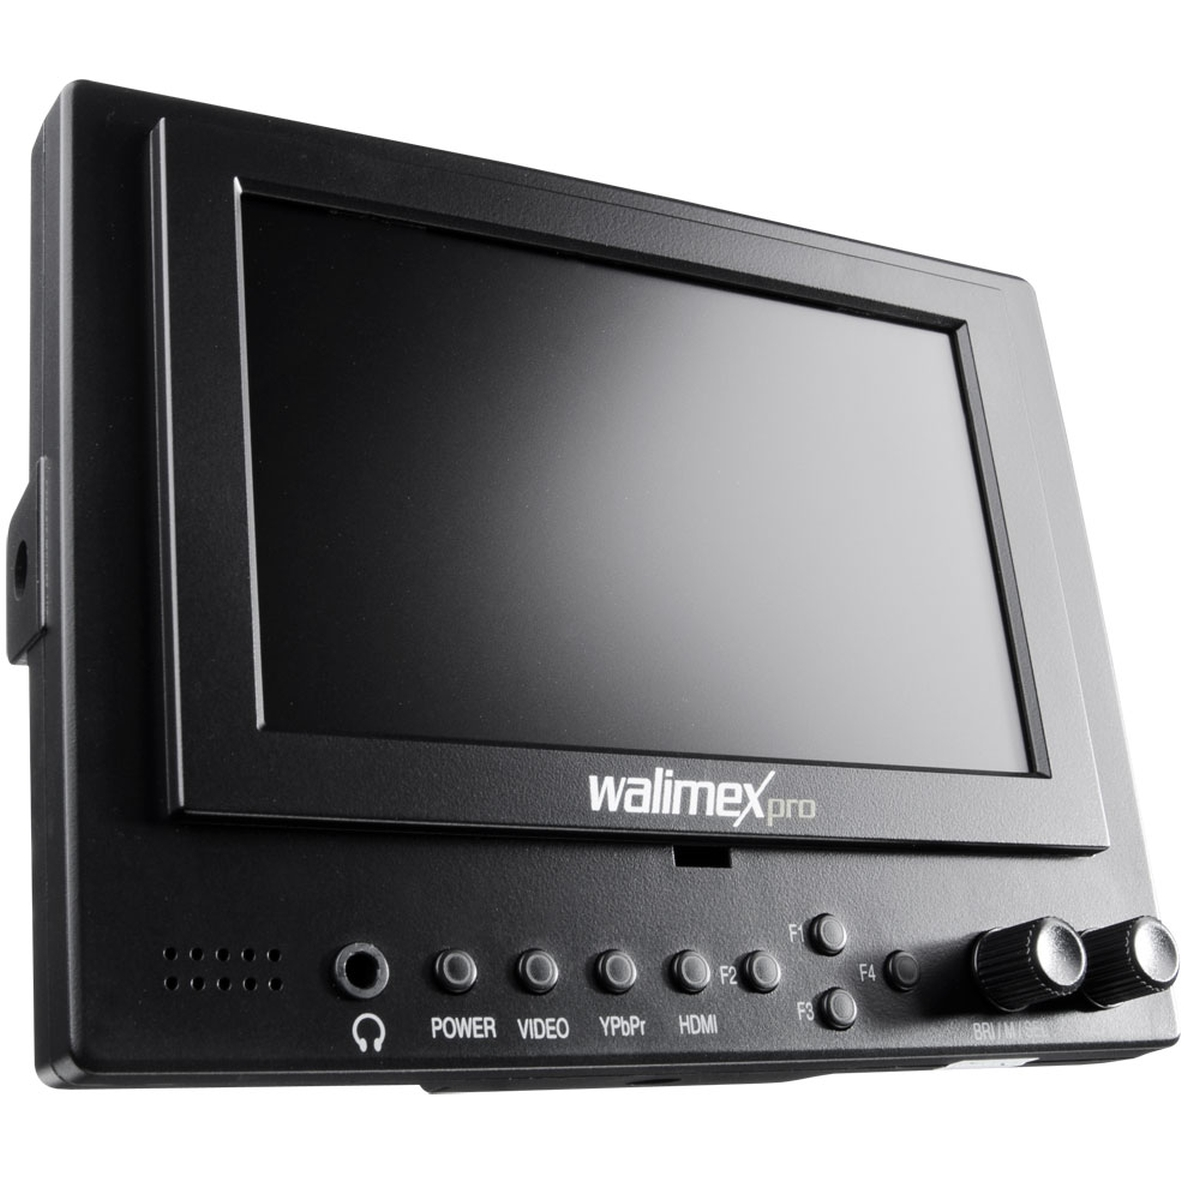 Walimex pro LCD Monitor 12.7 cm Video DSLR